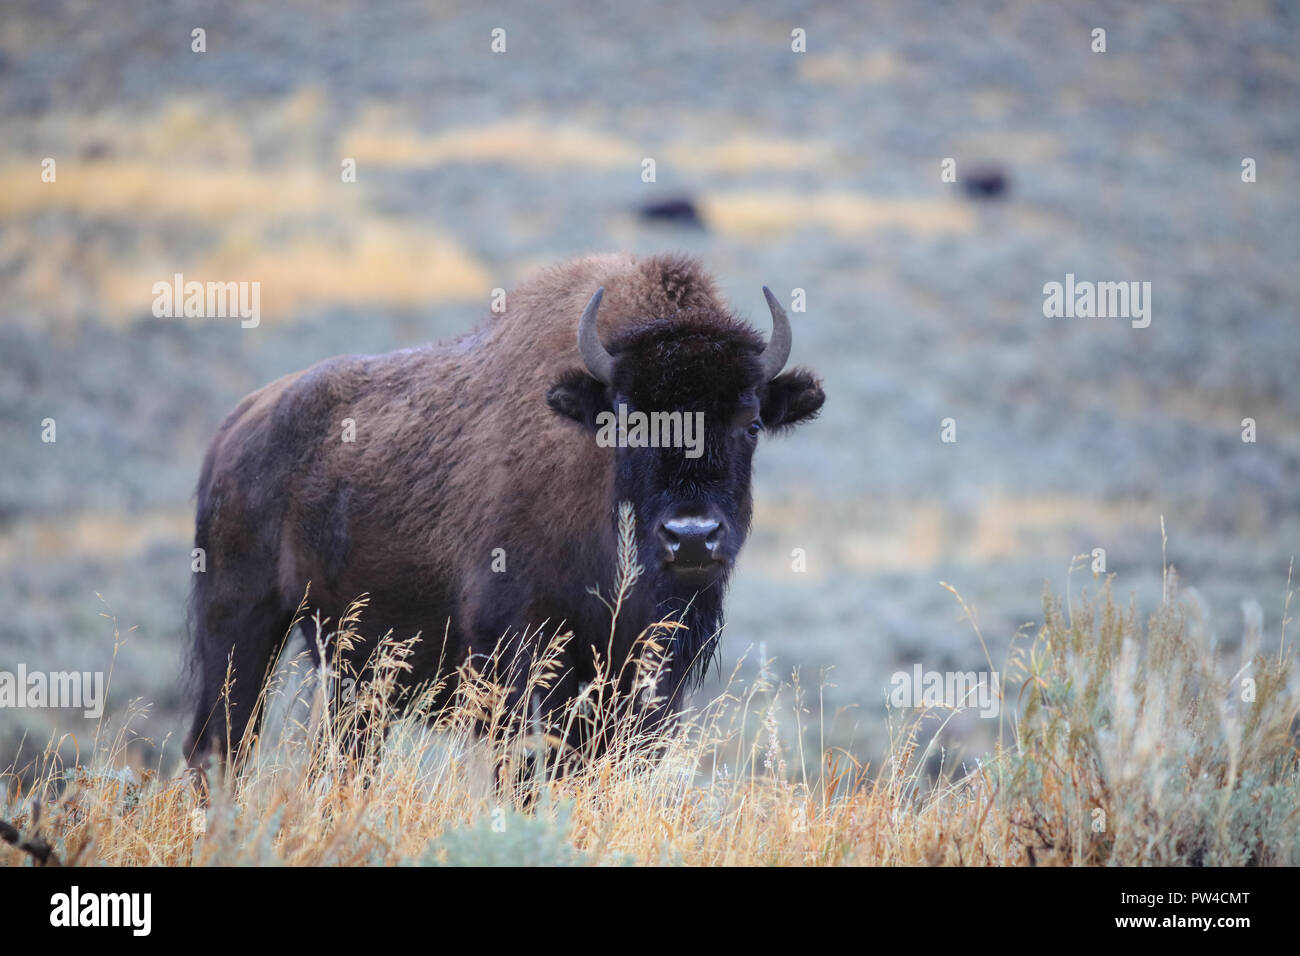 American Bison Buffalo Bison Bison Female Cow Stockfotos   American ... 9fcc9f2488